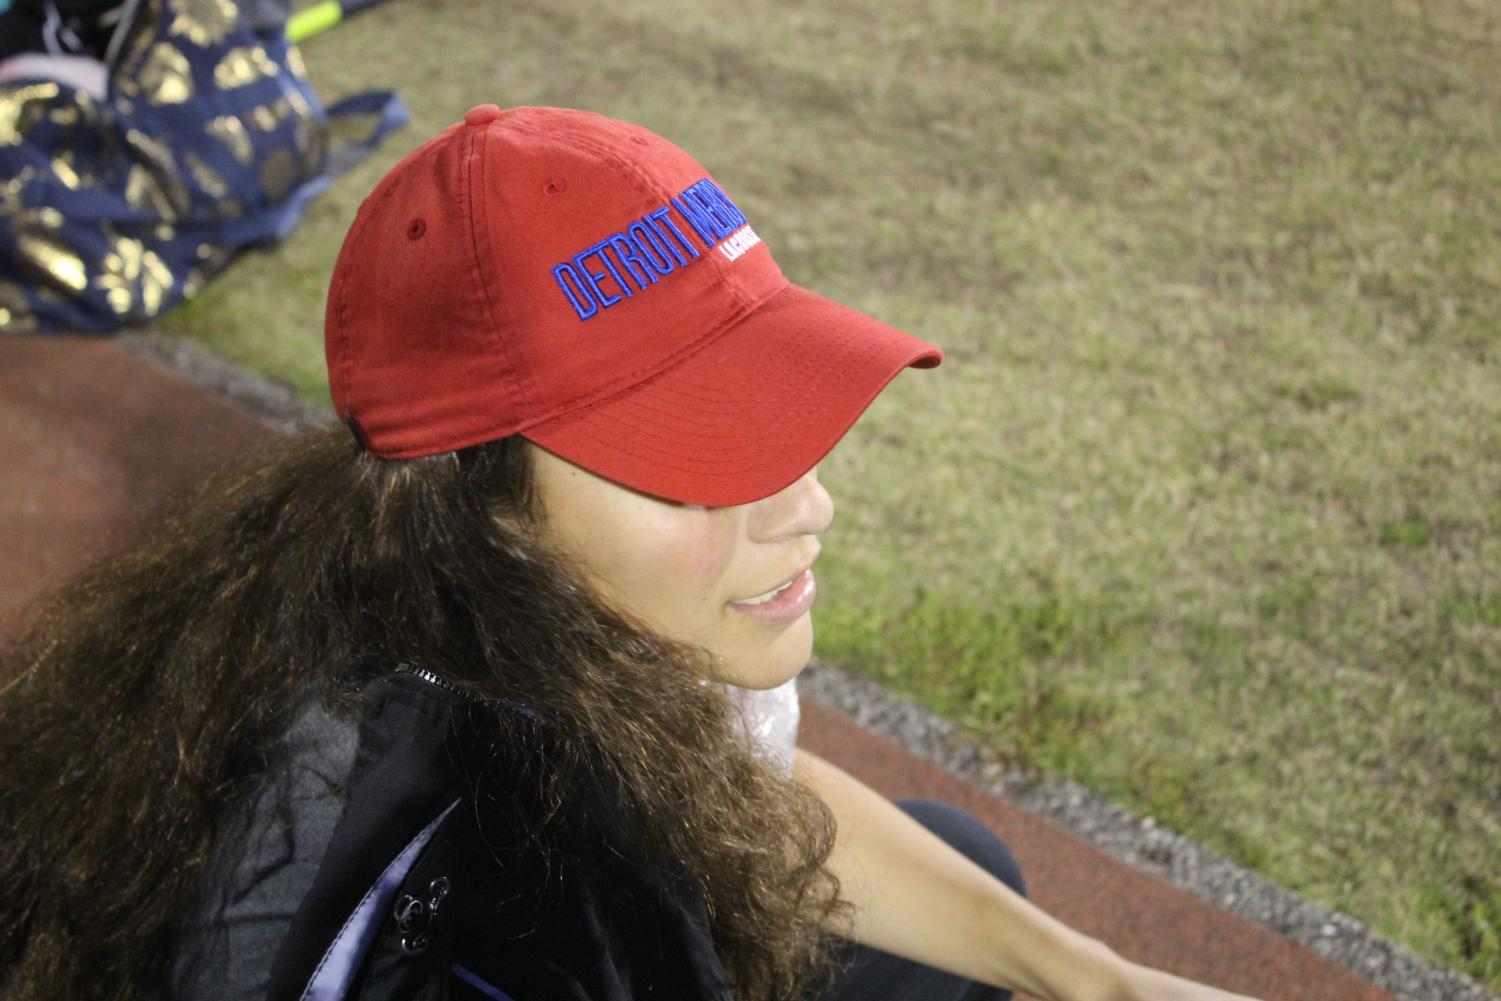 Cecelia Vergara represents her college as she watches the women's lacrosse game.